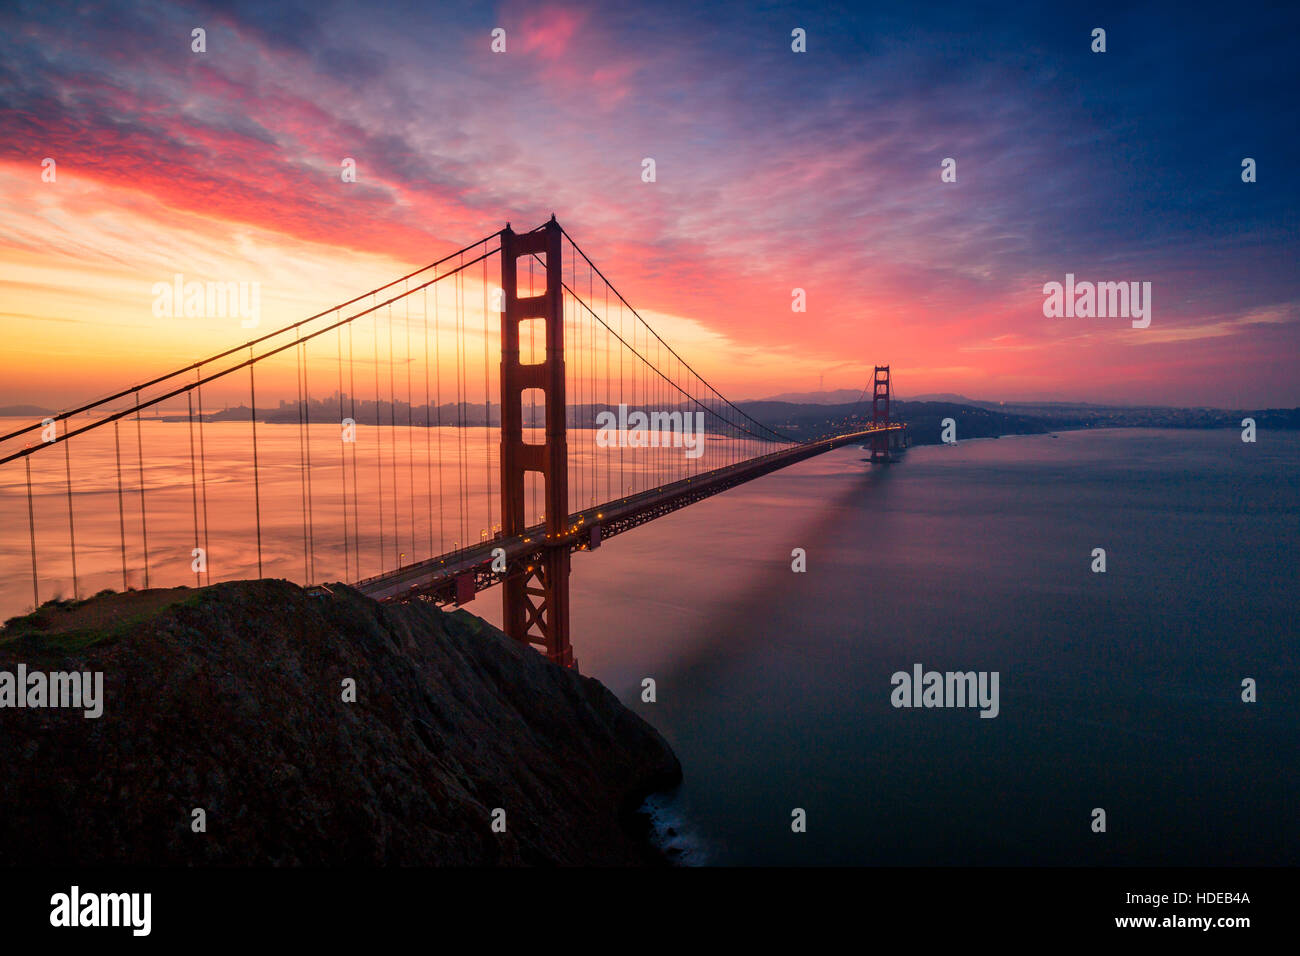 Colorful sunrise at the Golden Gate Bridge in San Francisco, California, USA - Stock Image